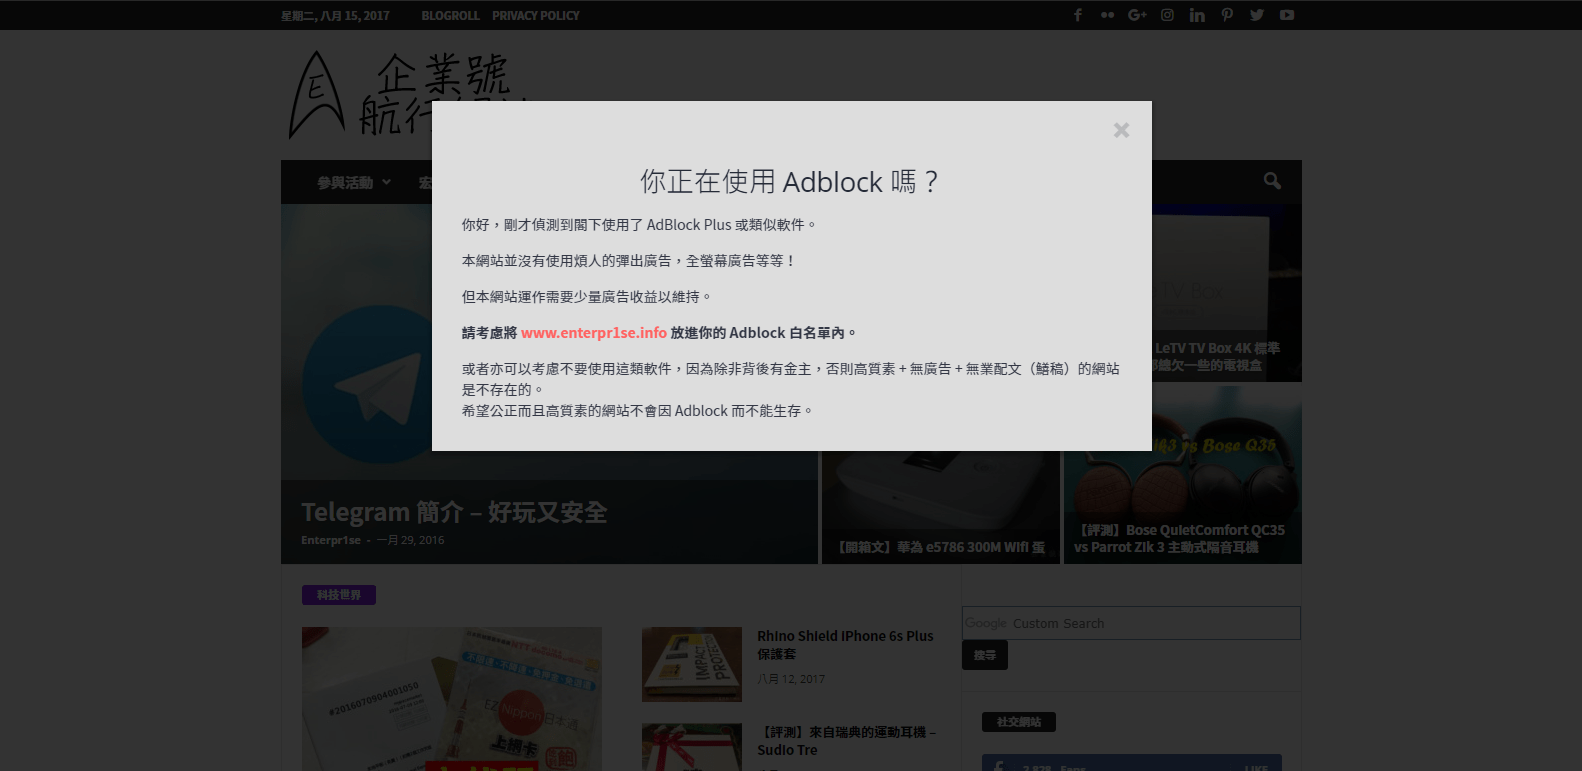 介紹 Ad Blocker Notify